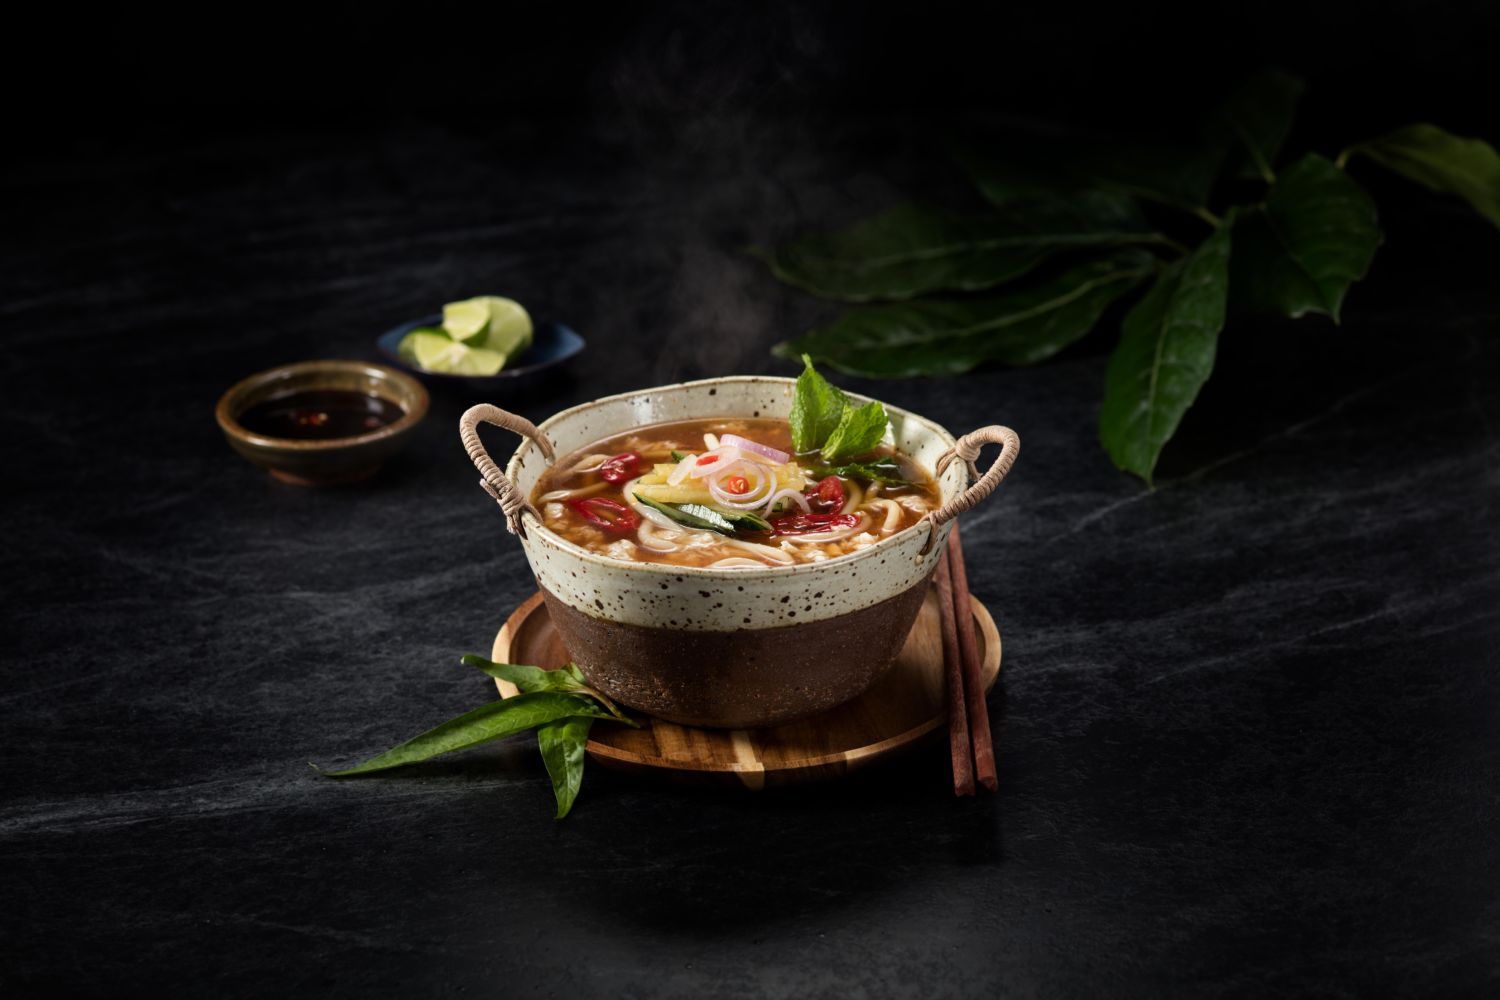 7th Malaysian Food Festival at Galaxy Macau Pangkor Laksa